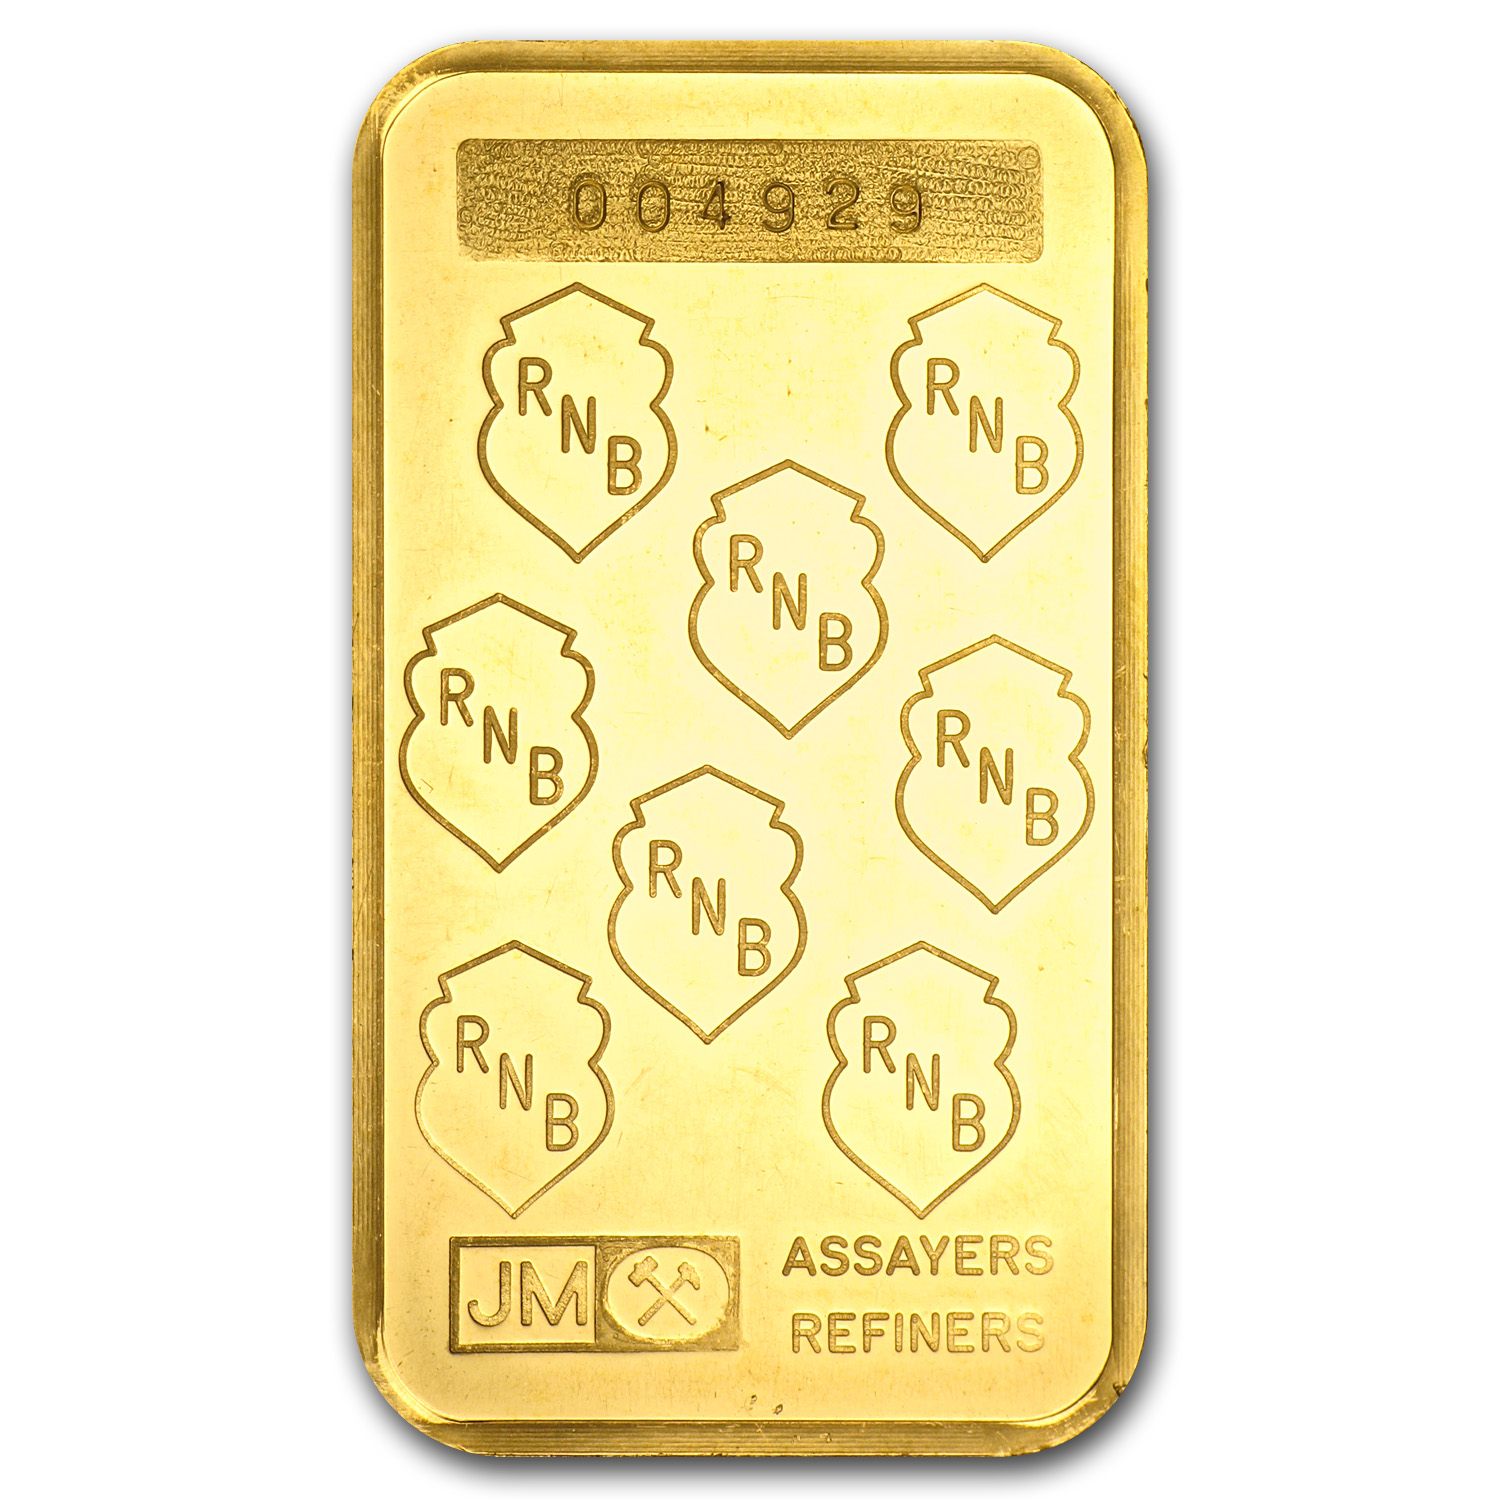 1 oz Gold Bar - Johnson Matthey (RNB)